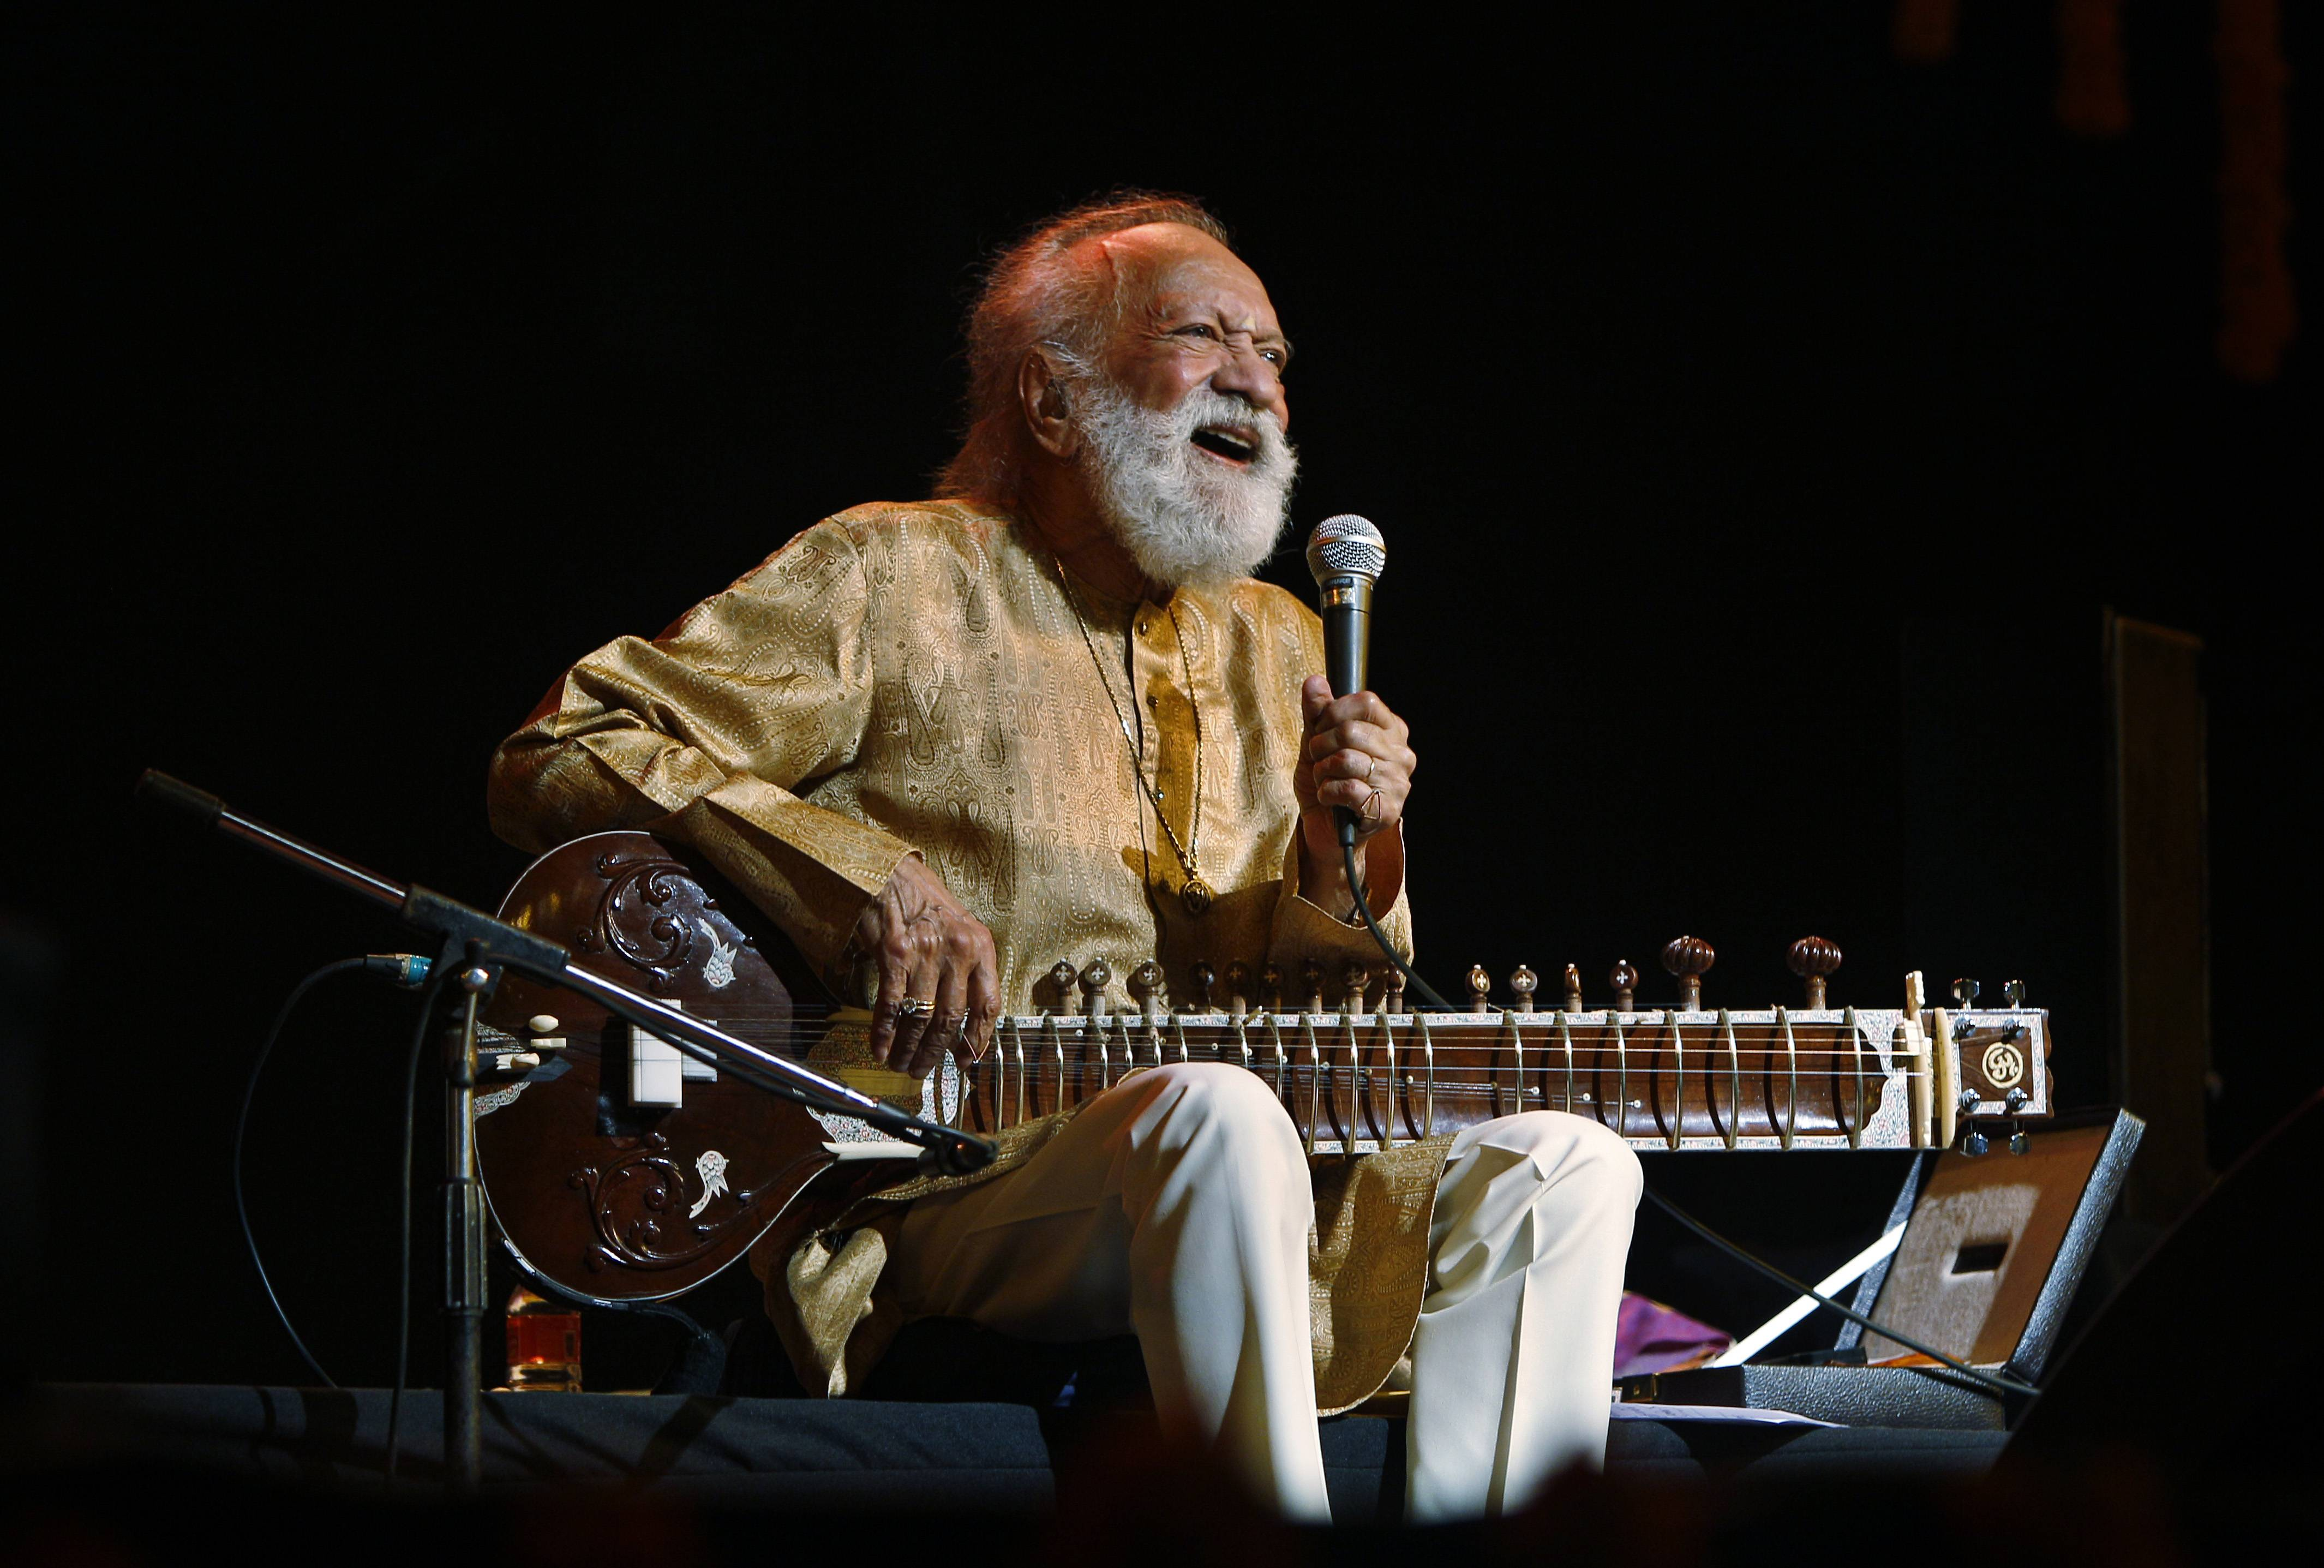 Indian musician and sitar maestro Pandit Ravi Shankar, 92, performs during a concert in Bangalore, India. Shankar, the sitar virtuoso who became a hippie musical icon of the 1960s after hobnobbing with the Beatles and who introduced traditional Indian ragas to Western audiences over an eight-decade career, died Tuesday. He was 92.